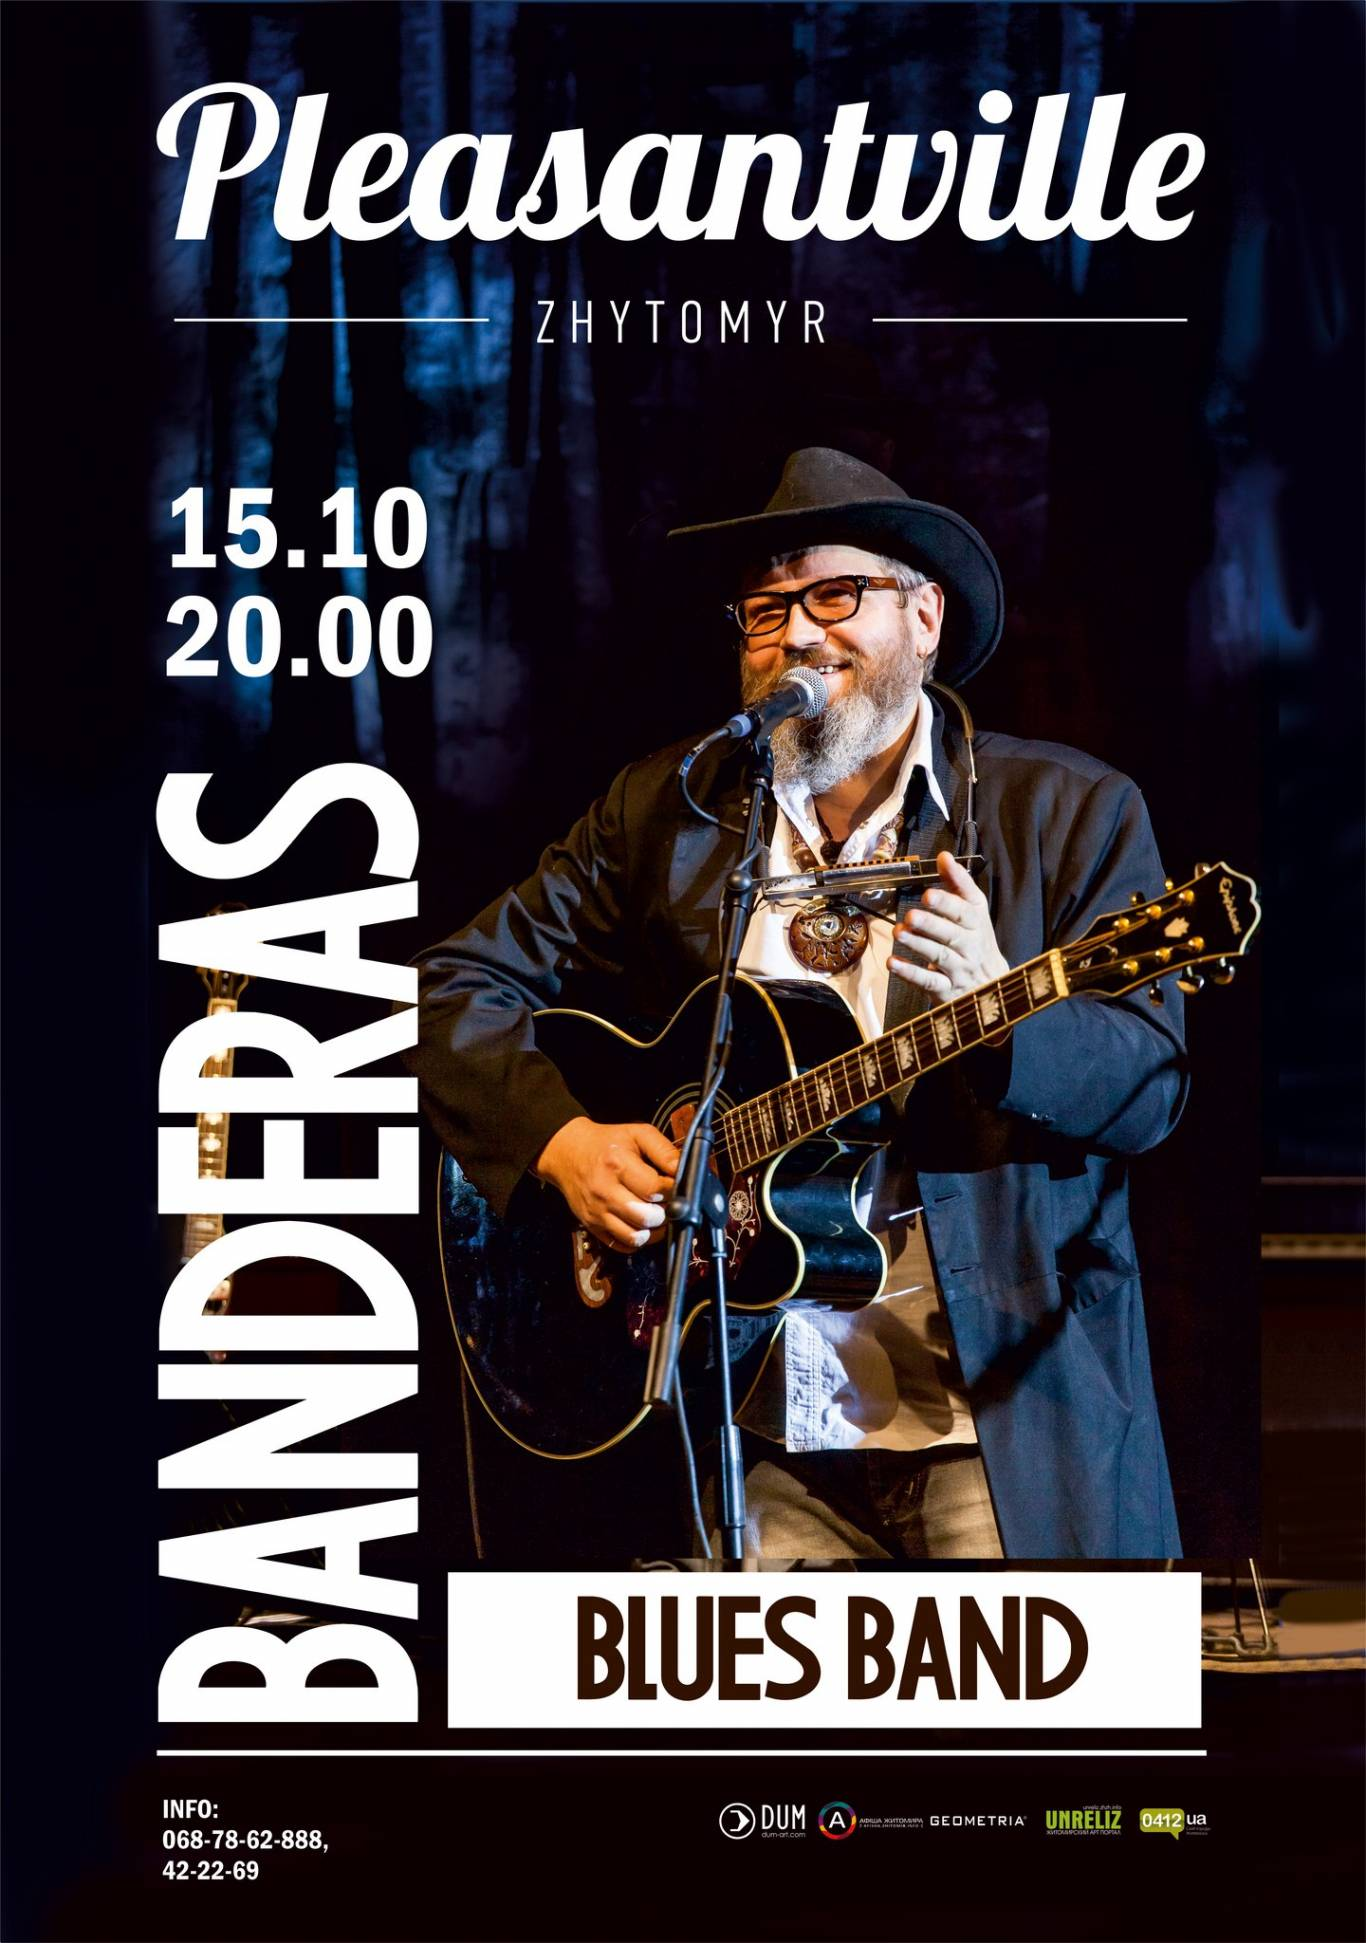 Banderas Blues Band @Pleasantville